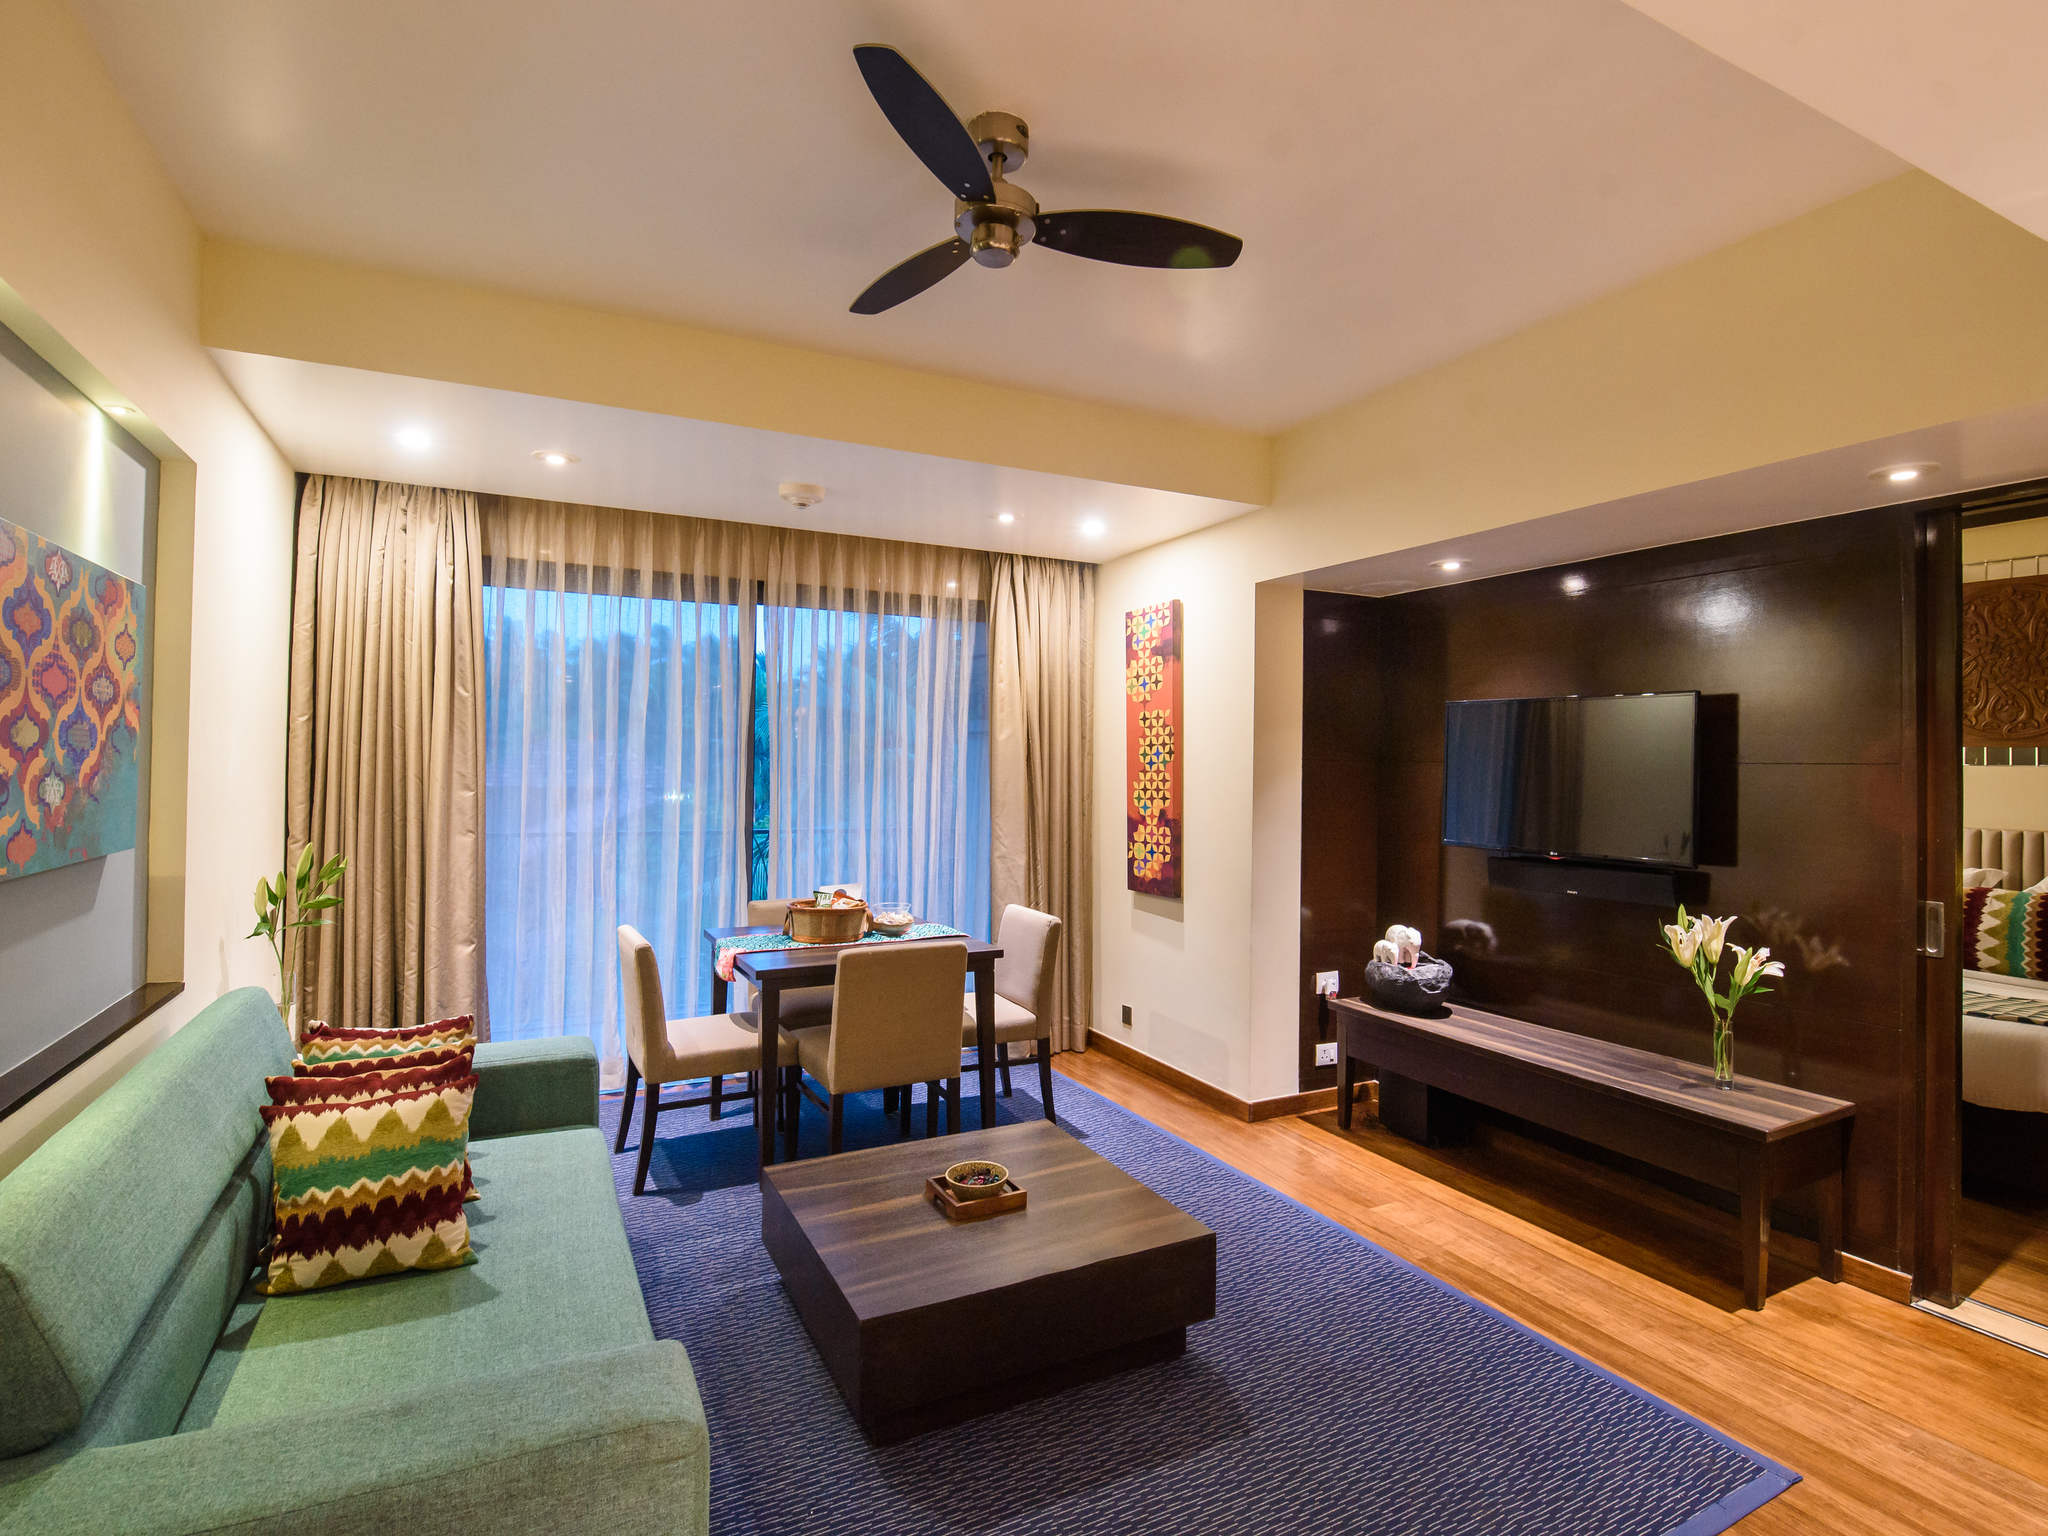 5 Star Shrem Resort Novotel Goa Resorts Spa Well Serve As A Home Office Again Showing The Wiring Pattern Rooms